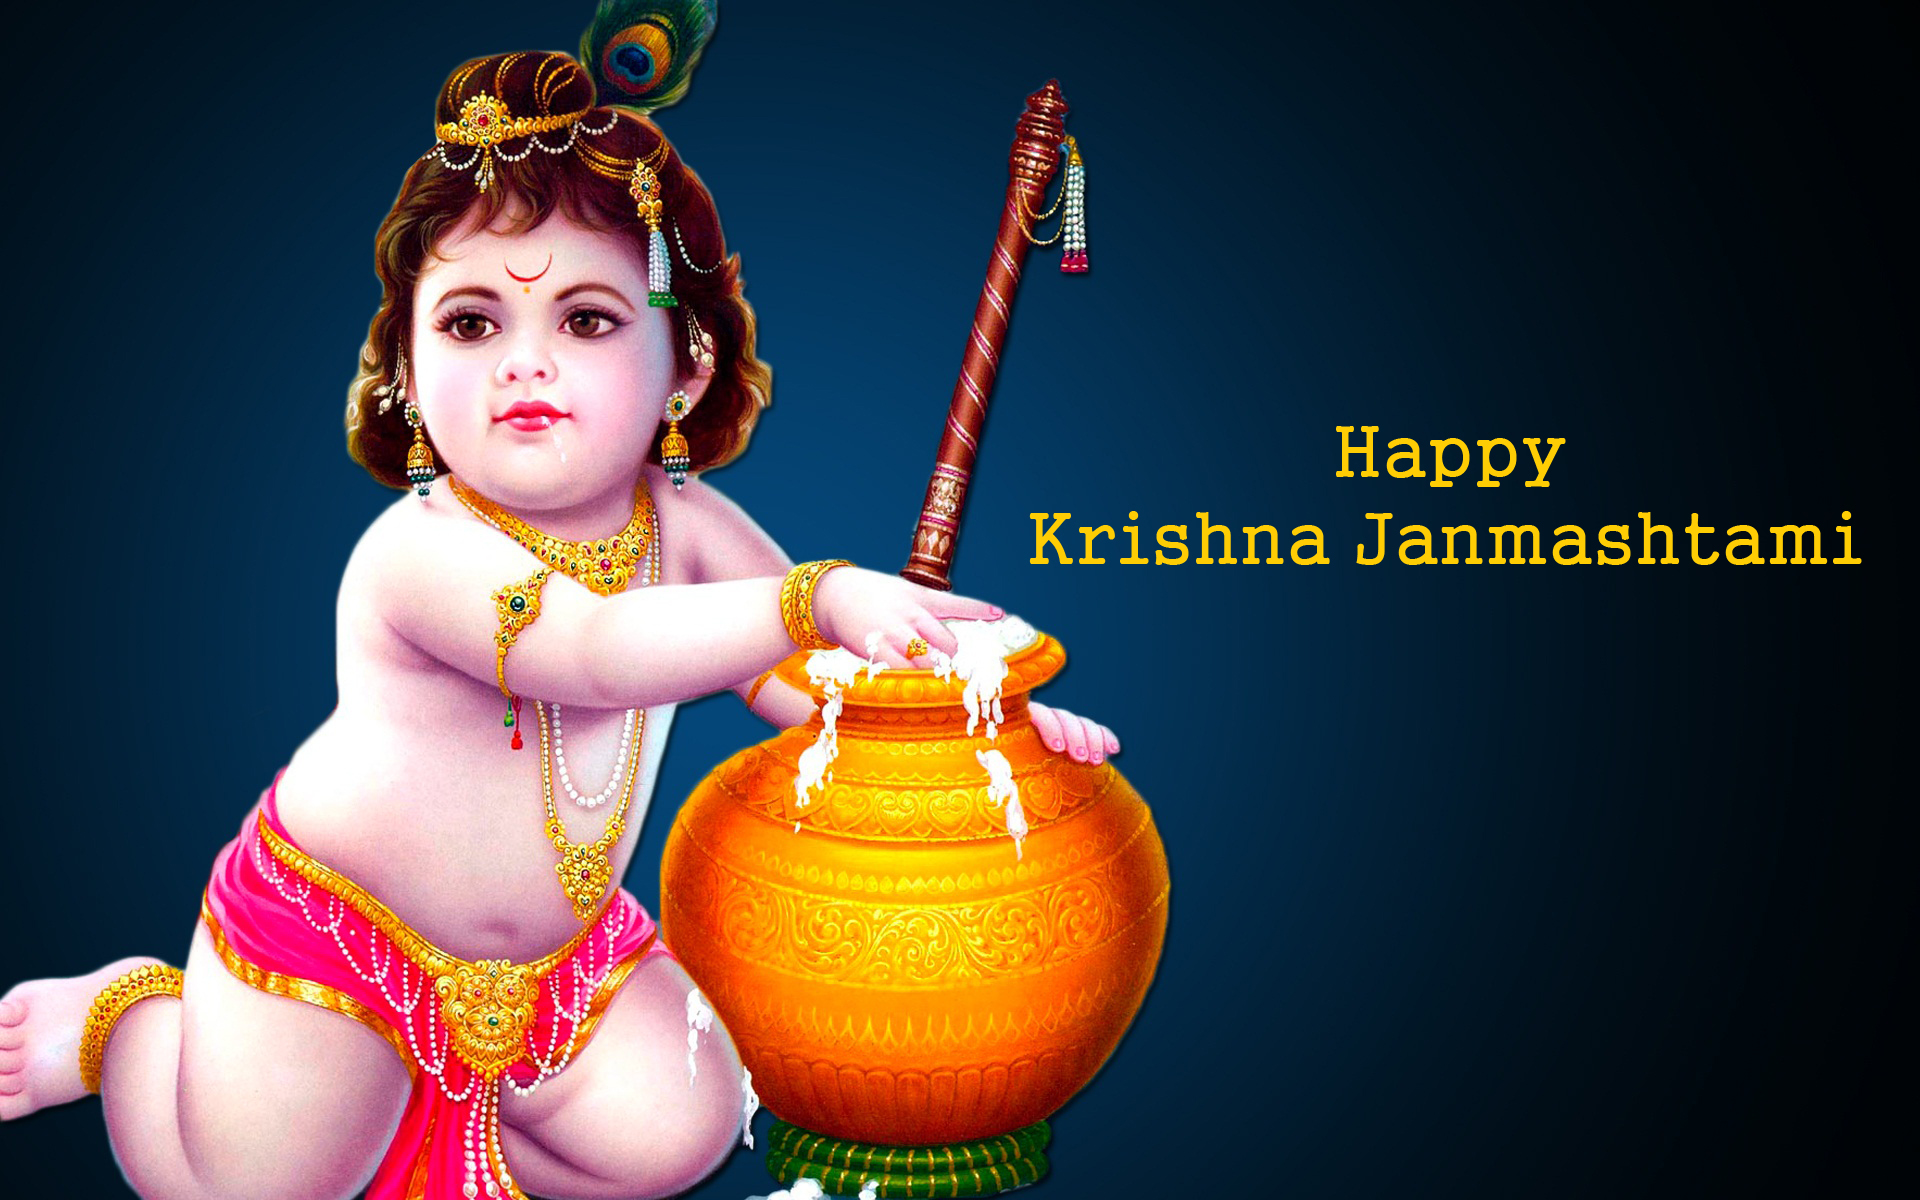 Simple Wallpaper Lord Cute - images-of-the-lord-krishna-wallpaper-for-computer  Trends_25485.jpg